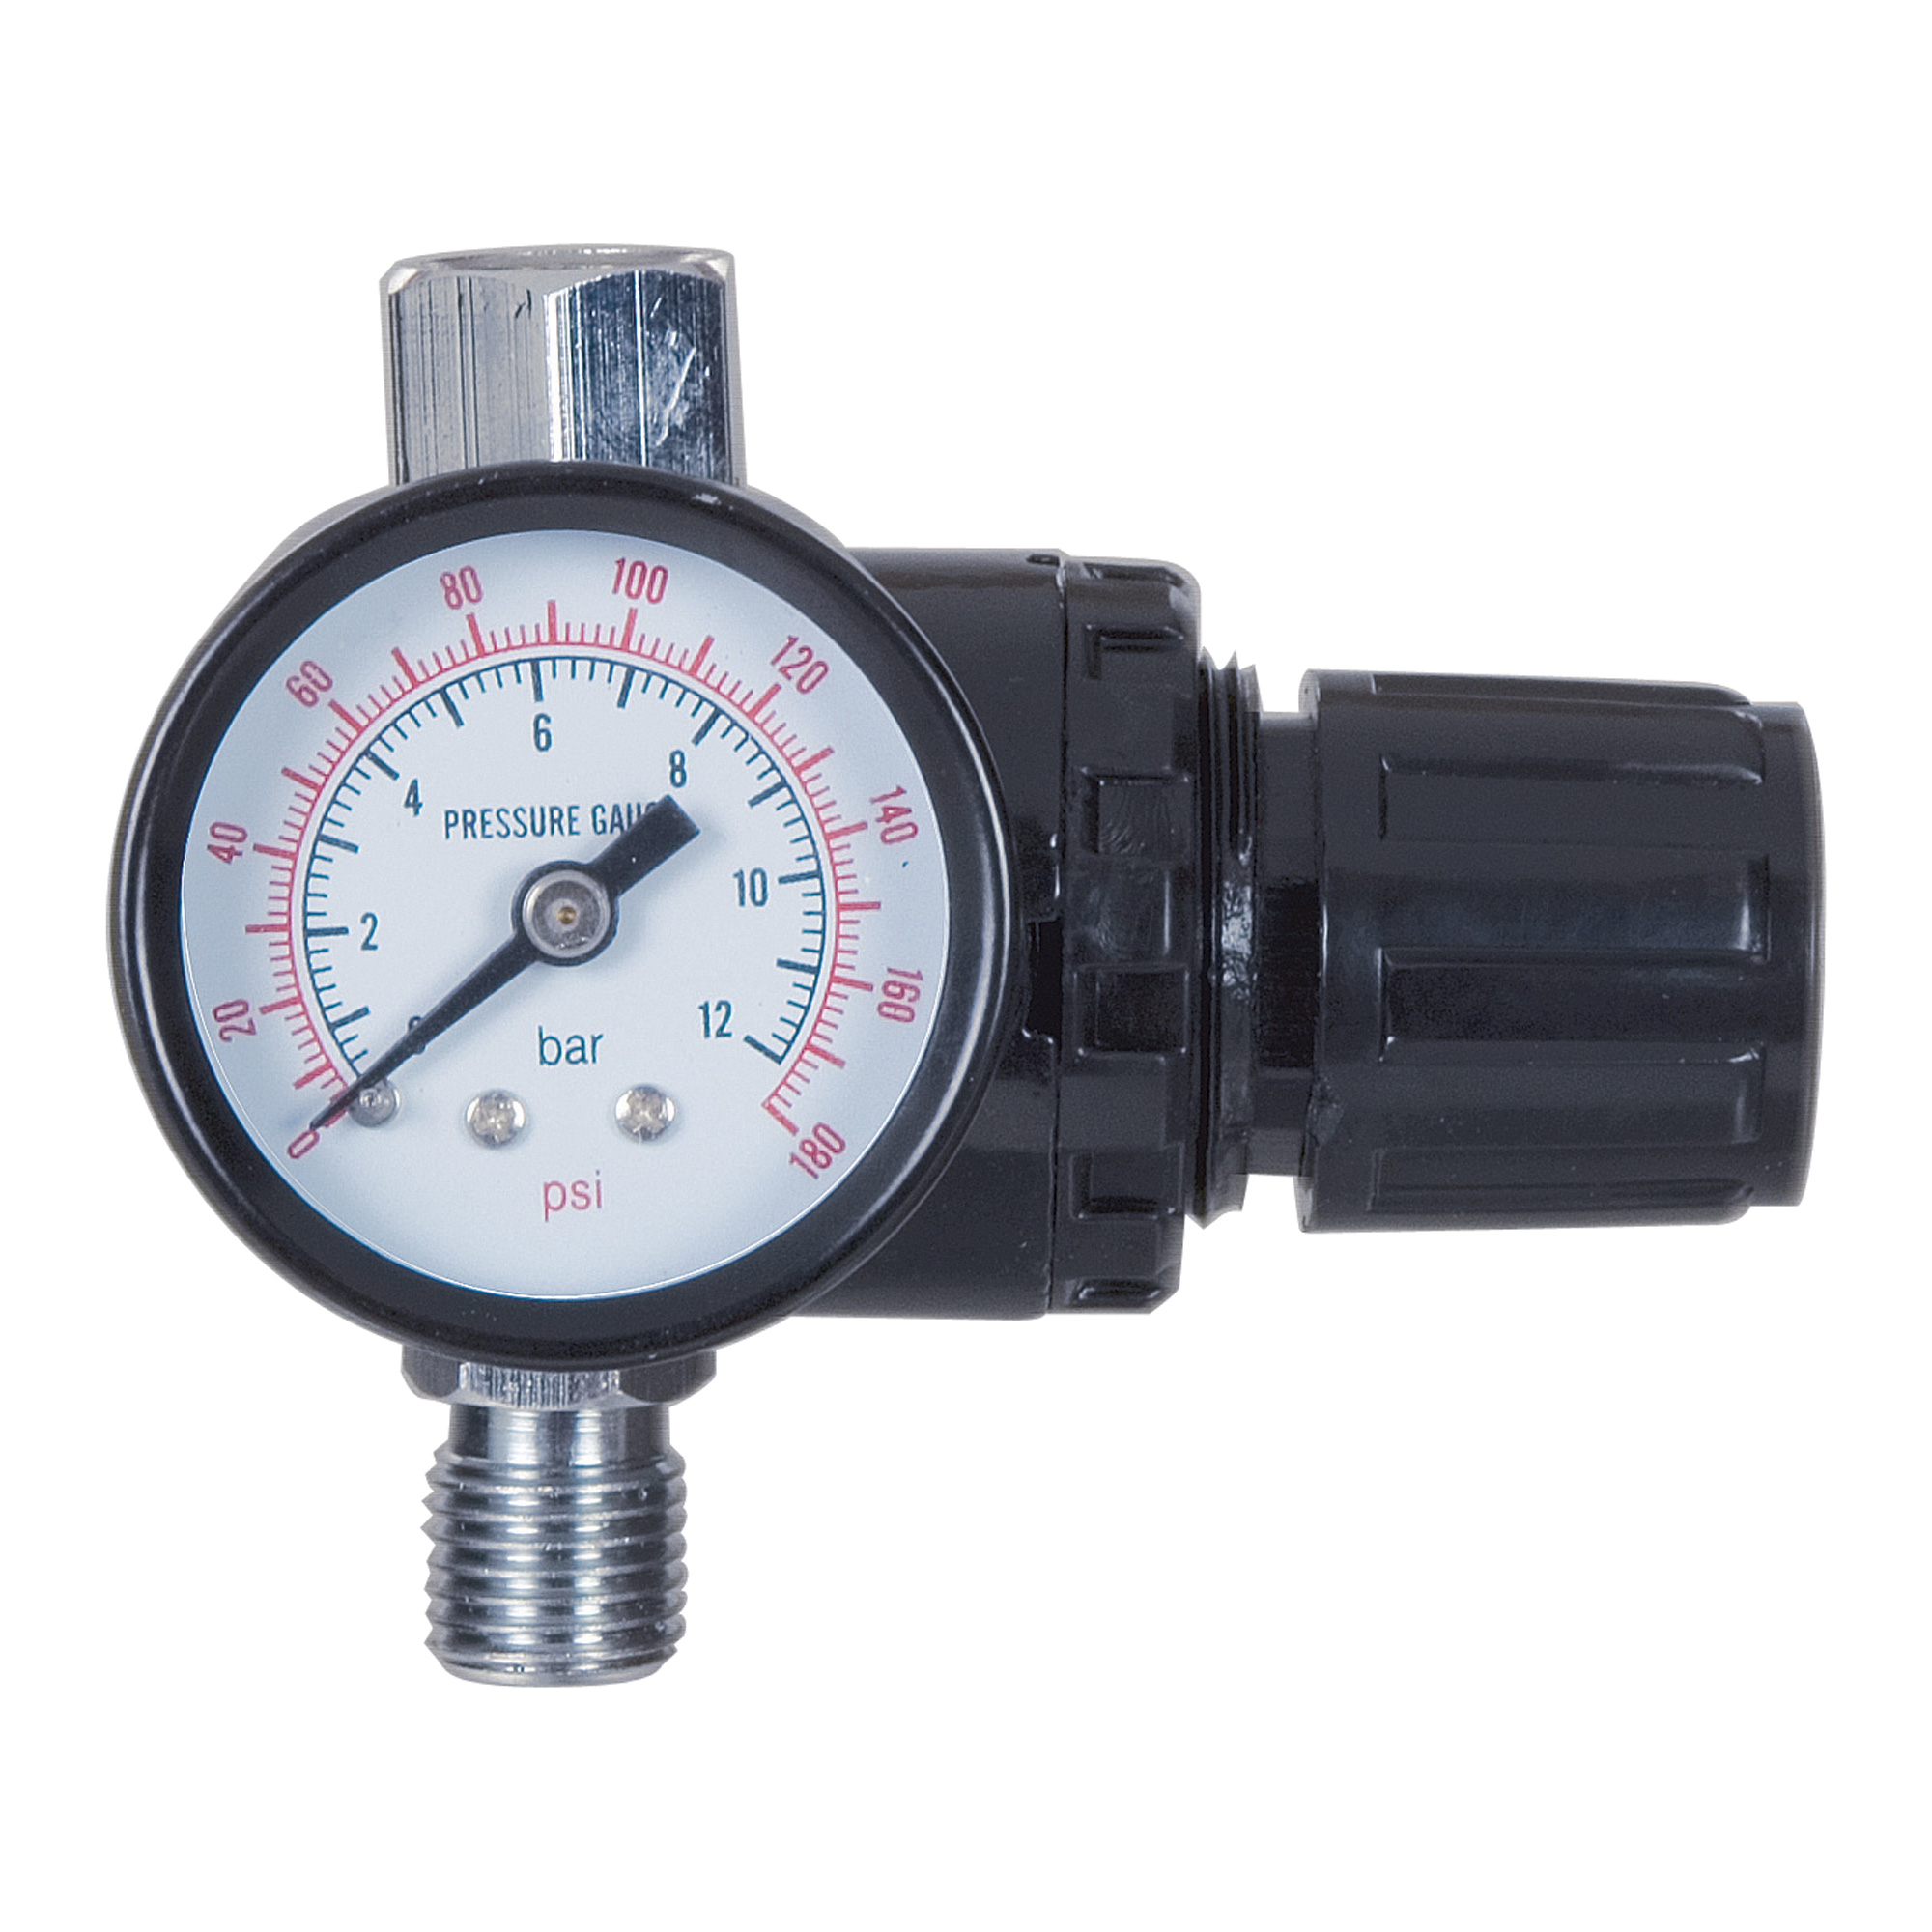 Adjustable regulator 15 psi with gauge